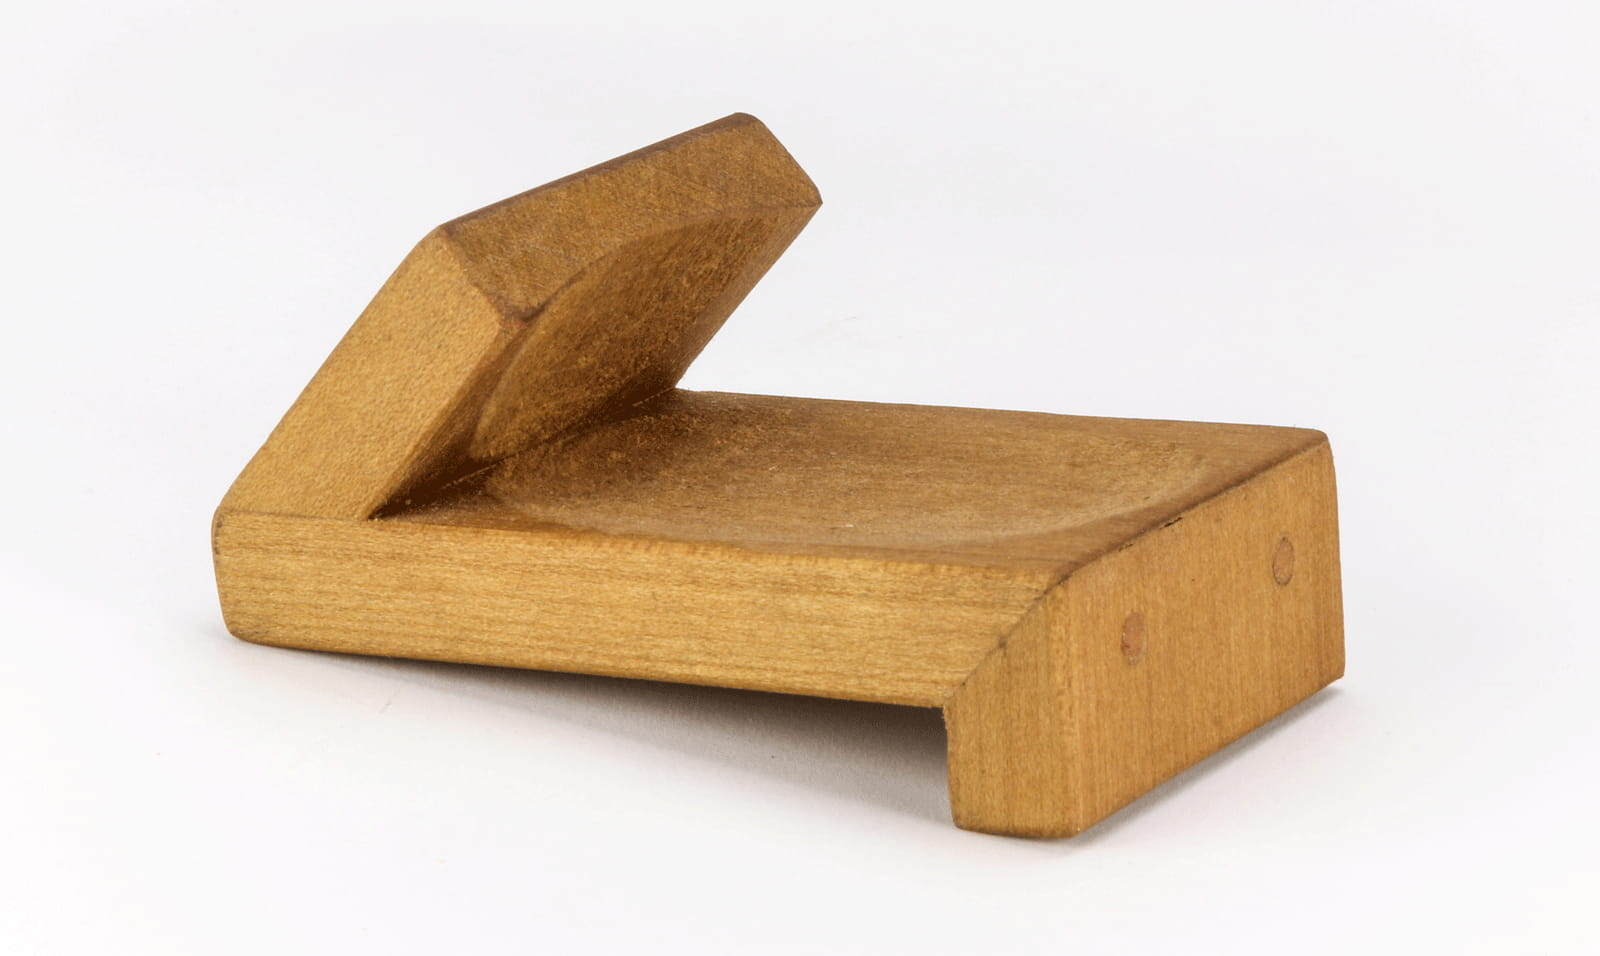 Wooden oyster holder helps support oyster for shucking